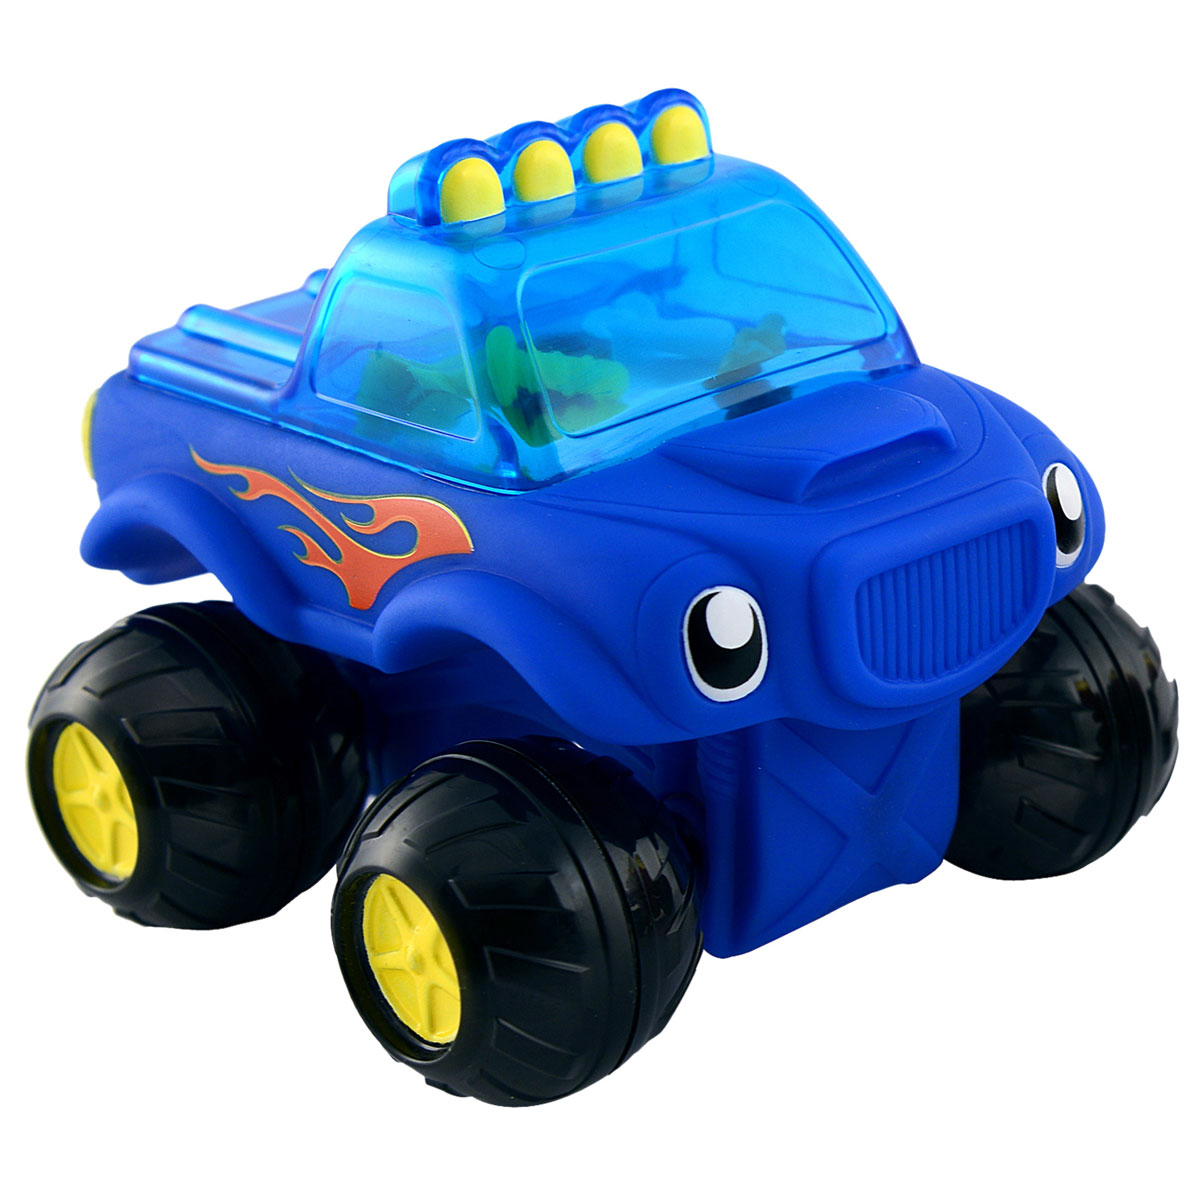 MONSTER TRUCK bath toy